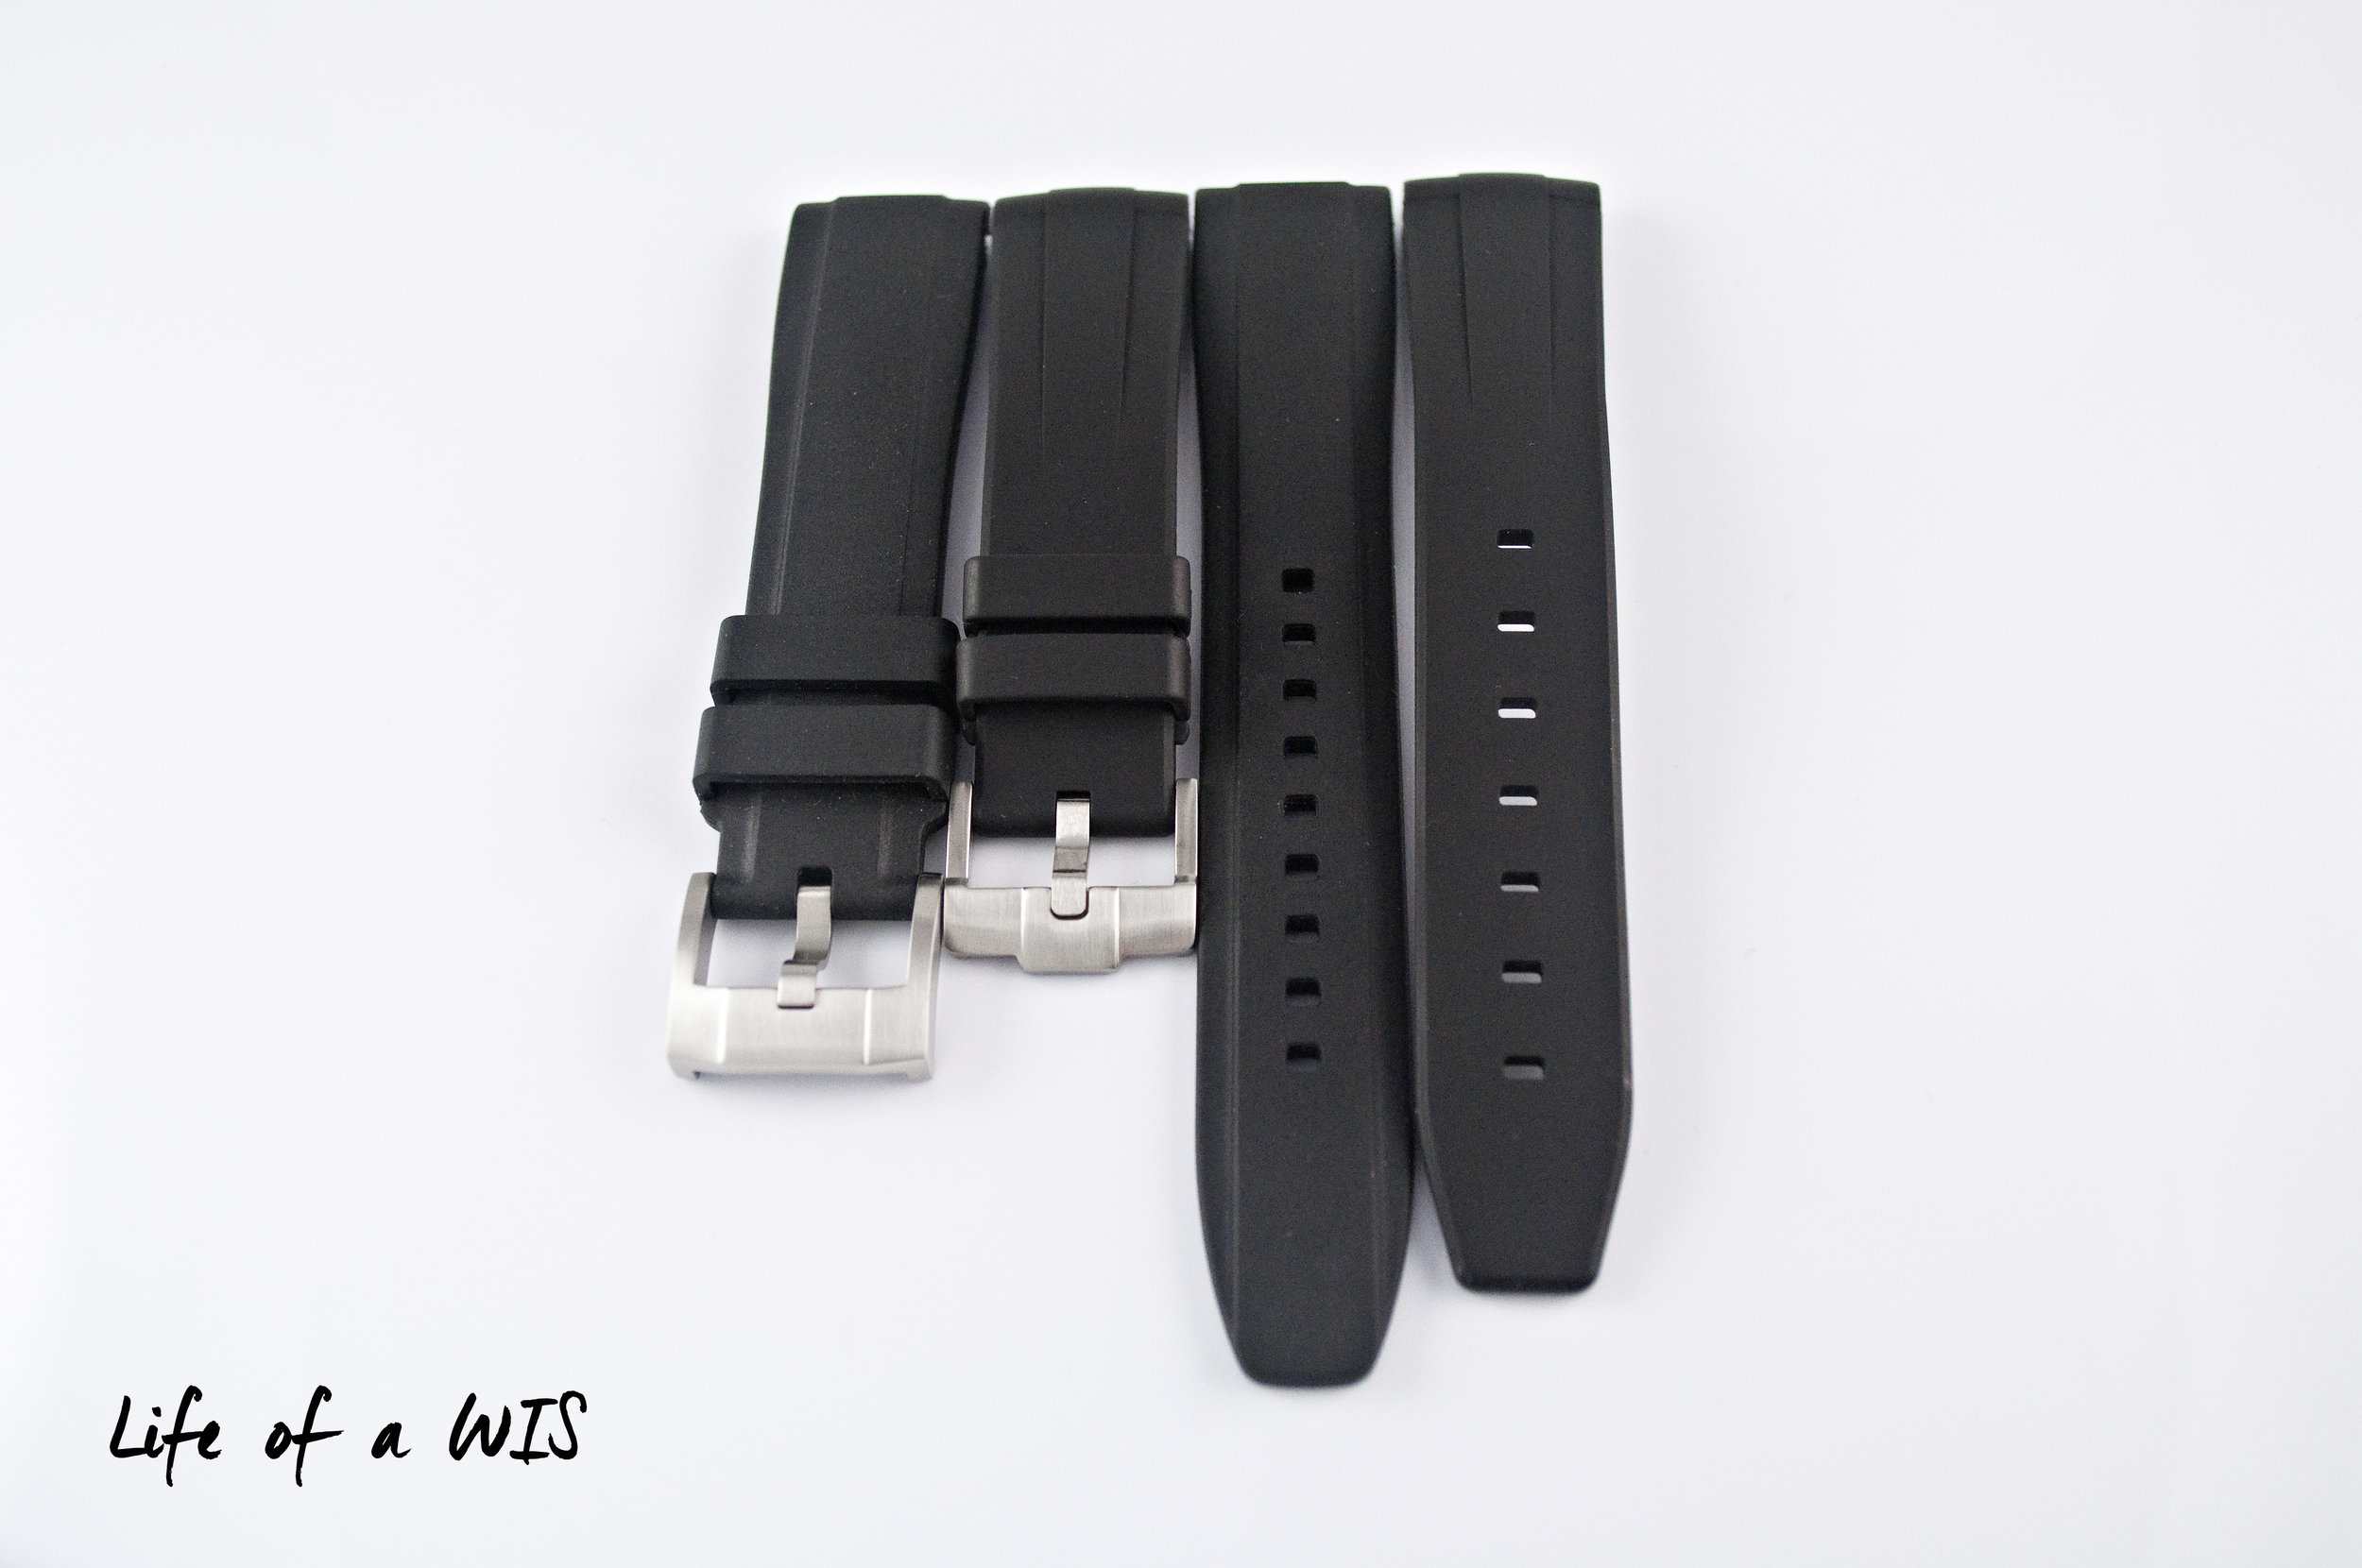 The Everest strap is 10 mm longer on each side compared to Rubber B.